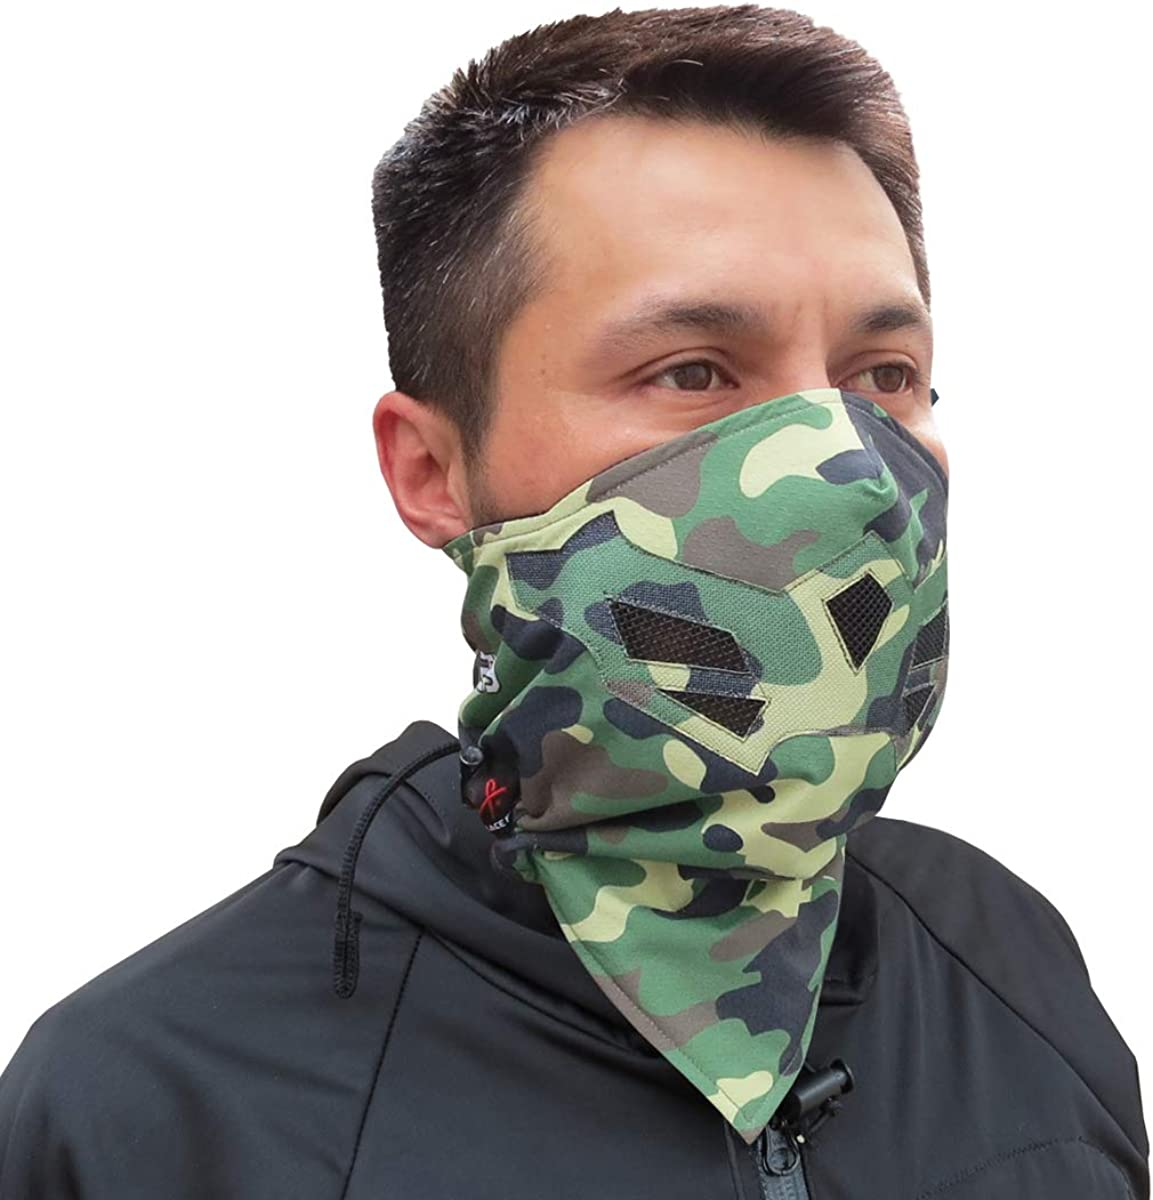 Motorcycle. Many Colors Grace Folly Half Face Mask for Cold Winter Weather Use this Half Balaclava for Snowboarding Ski